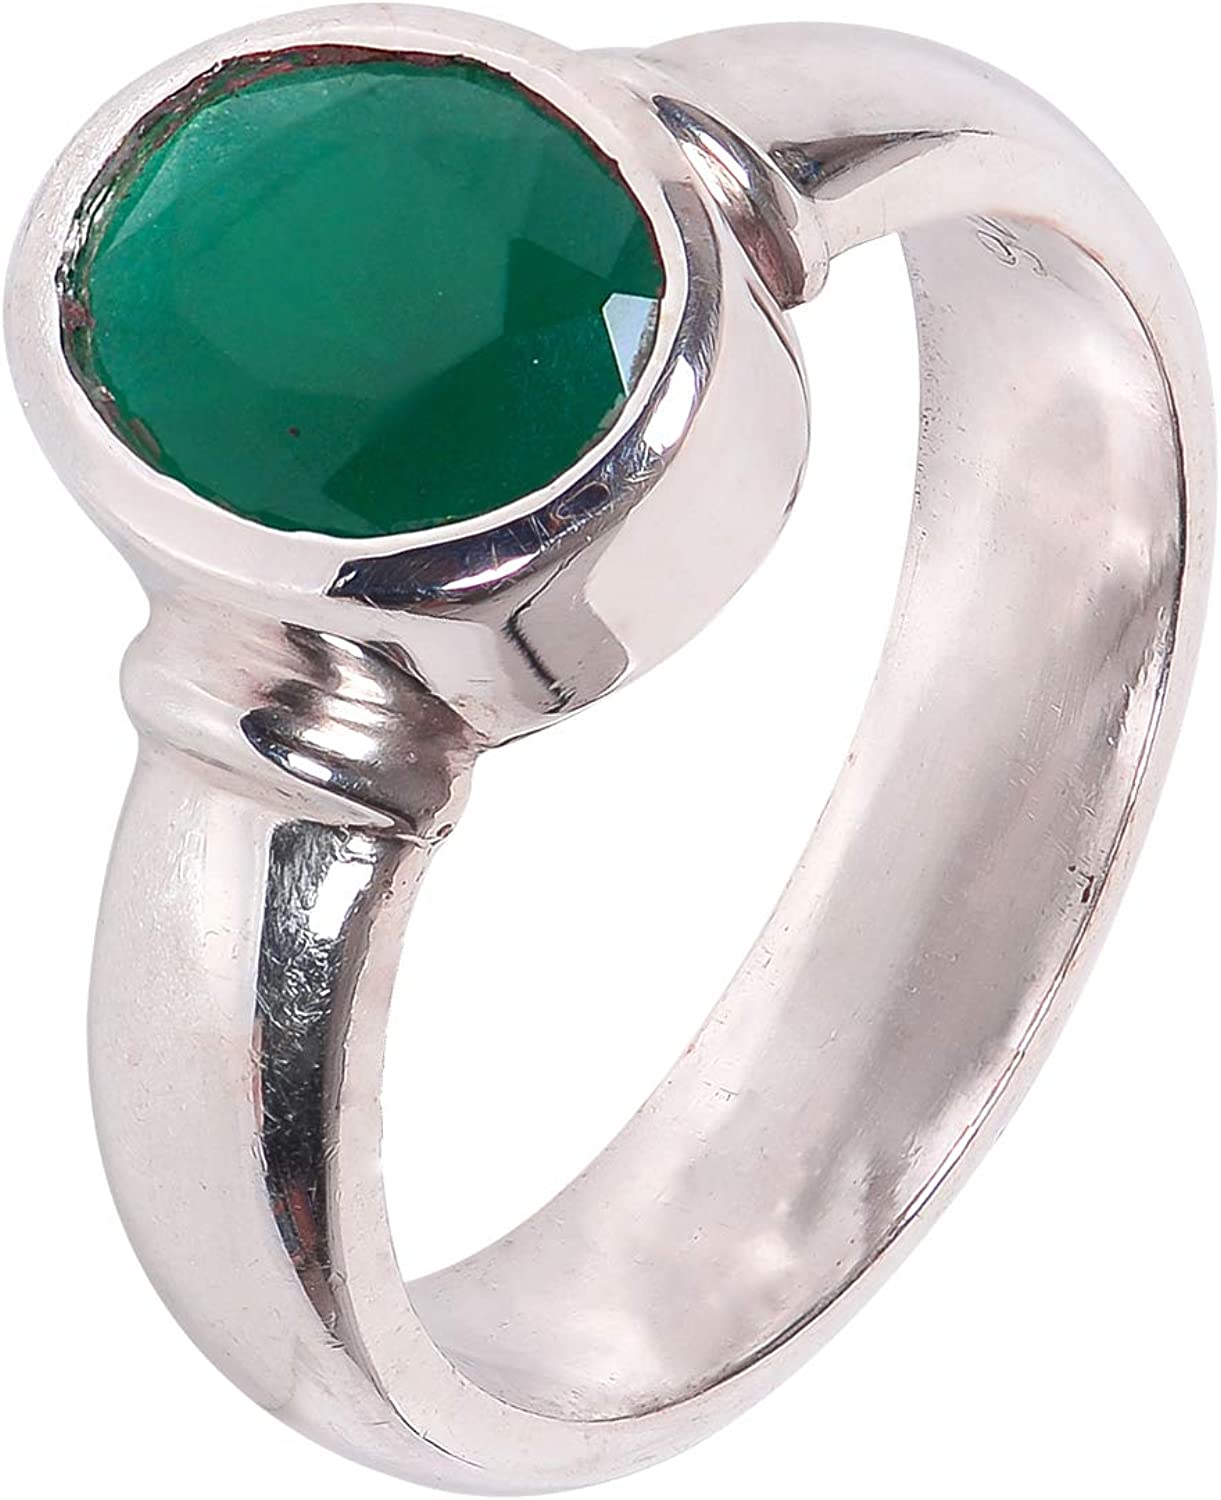 Silverwala Special Campaign 925 Sterling Silver Emerald f Finger Ring Stone Birth Omaha Mall